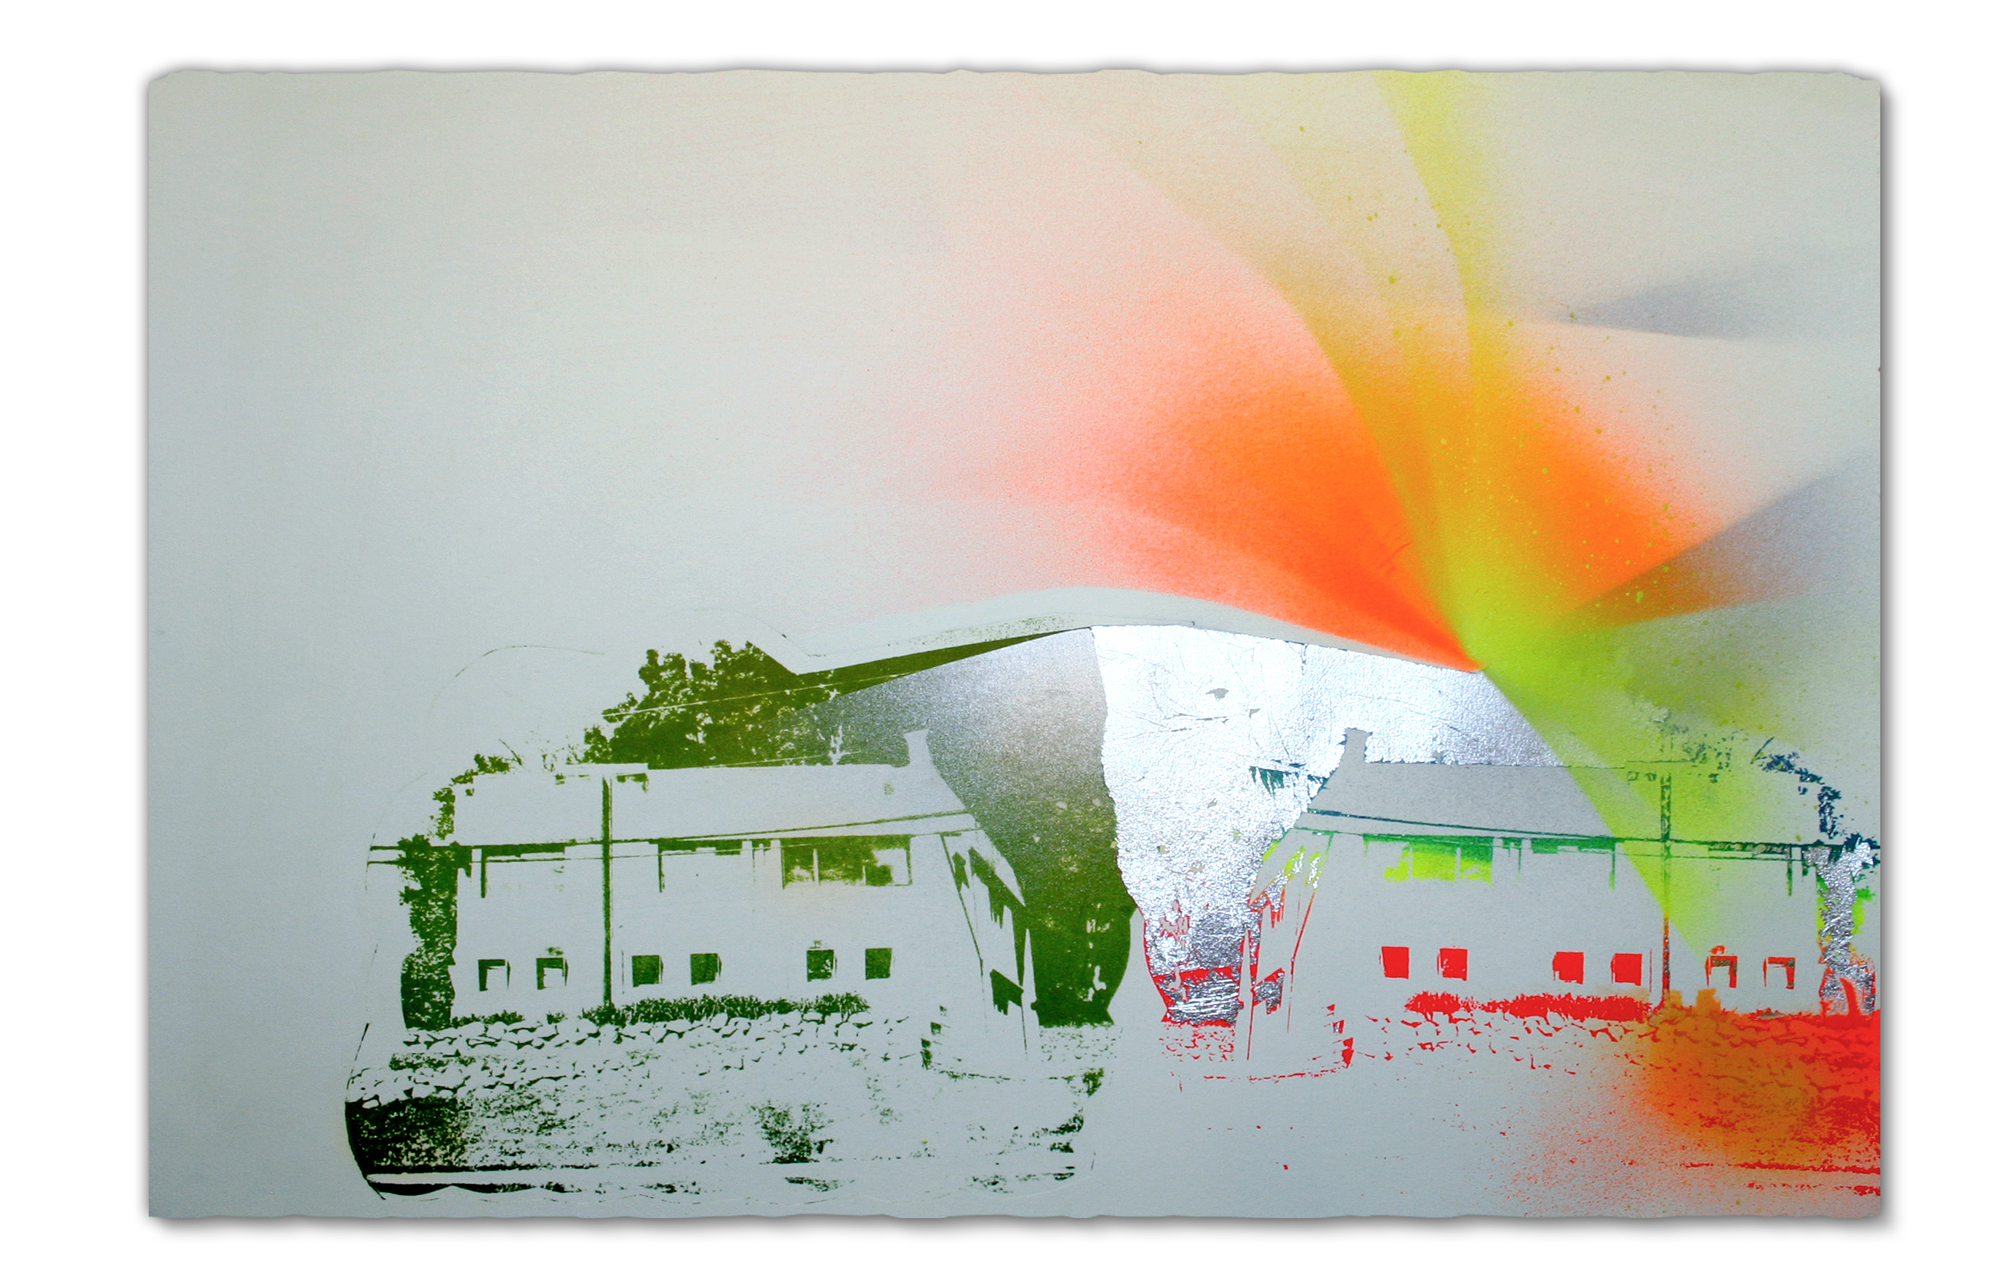 Architecture firm, East Peoria (I think),  2015 Photo lithography, screenprint, spray paint and pencil, 15 in H x 22.5 in W